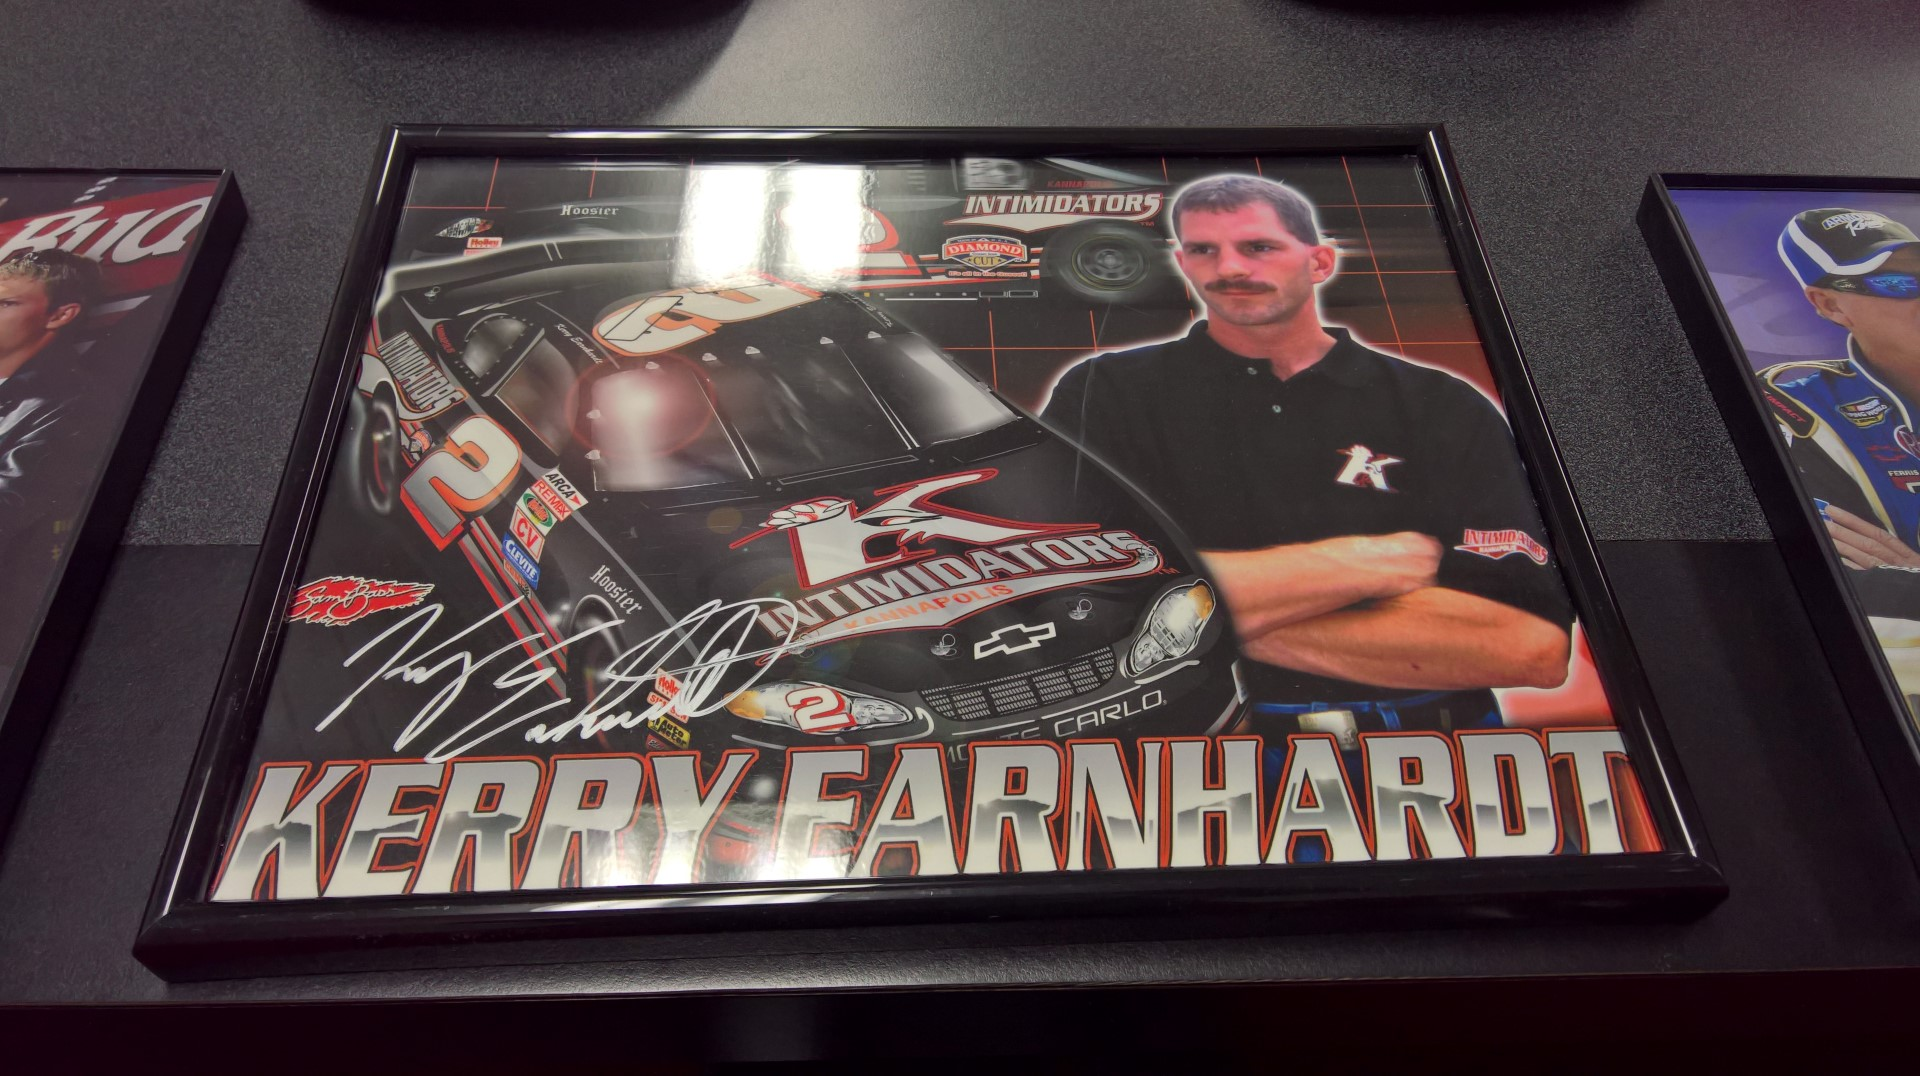 Kerry Earnhardt Signed Hero Card